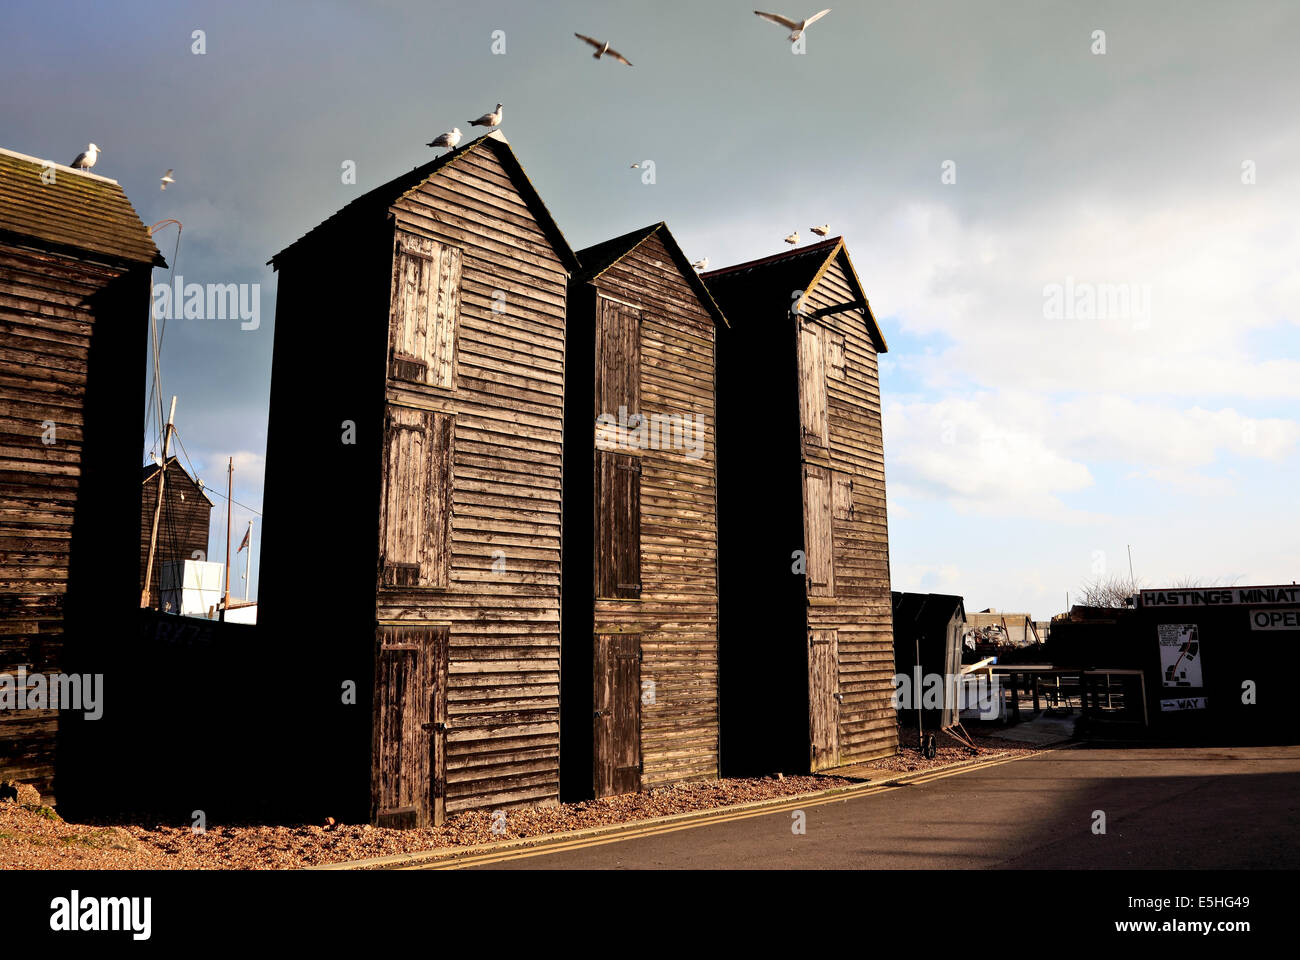 9522. Net drying sheds, Rock a Nore, Hastings, East Sussex - Stock Image